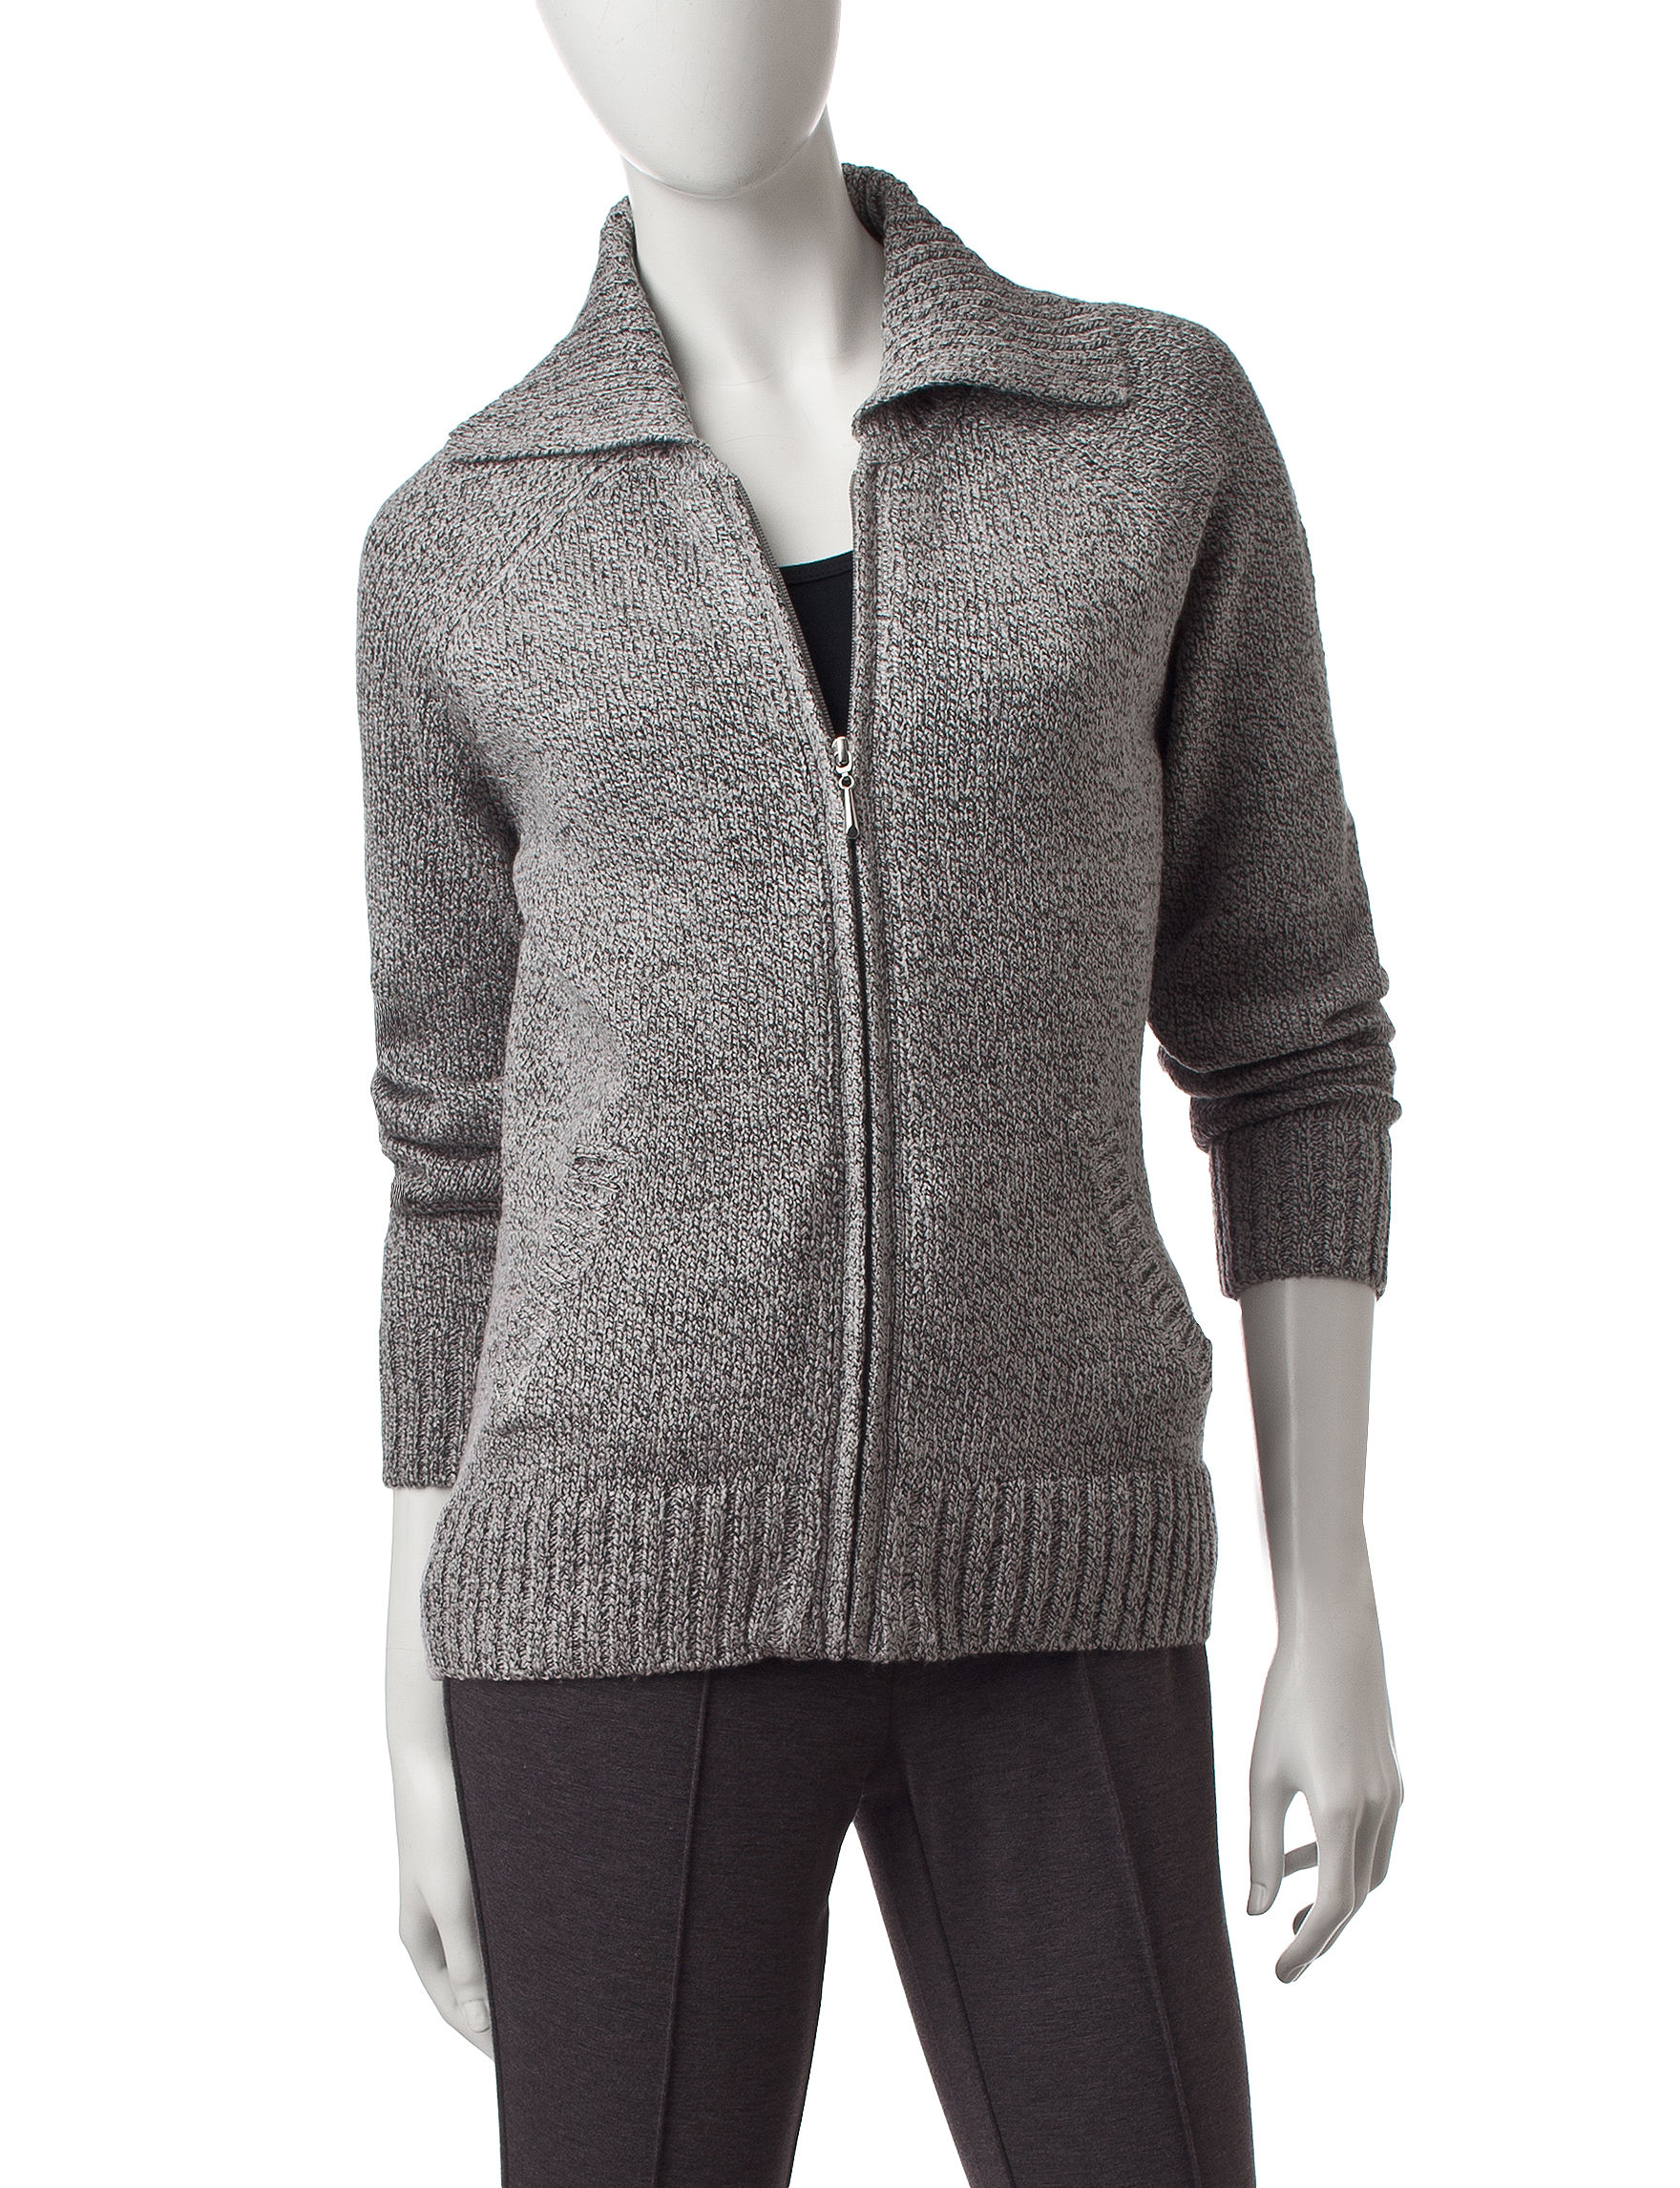 Rebecca Malone Grey Lightweight Jackets & Blazers